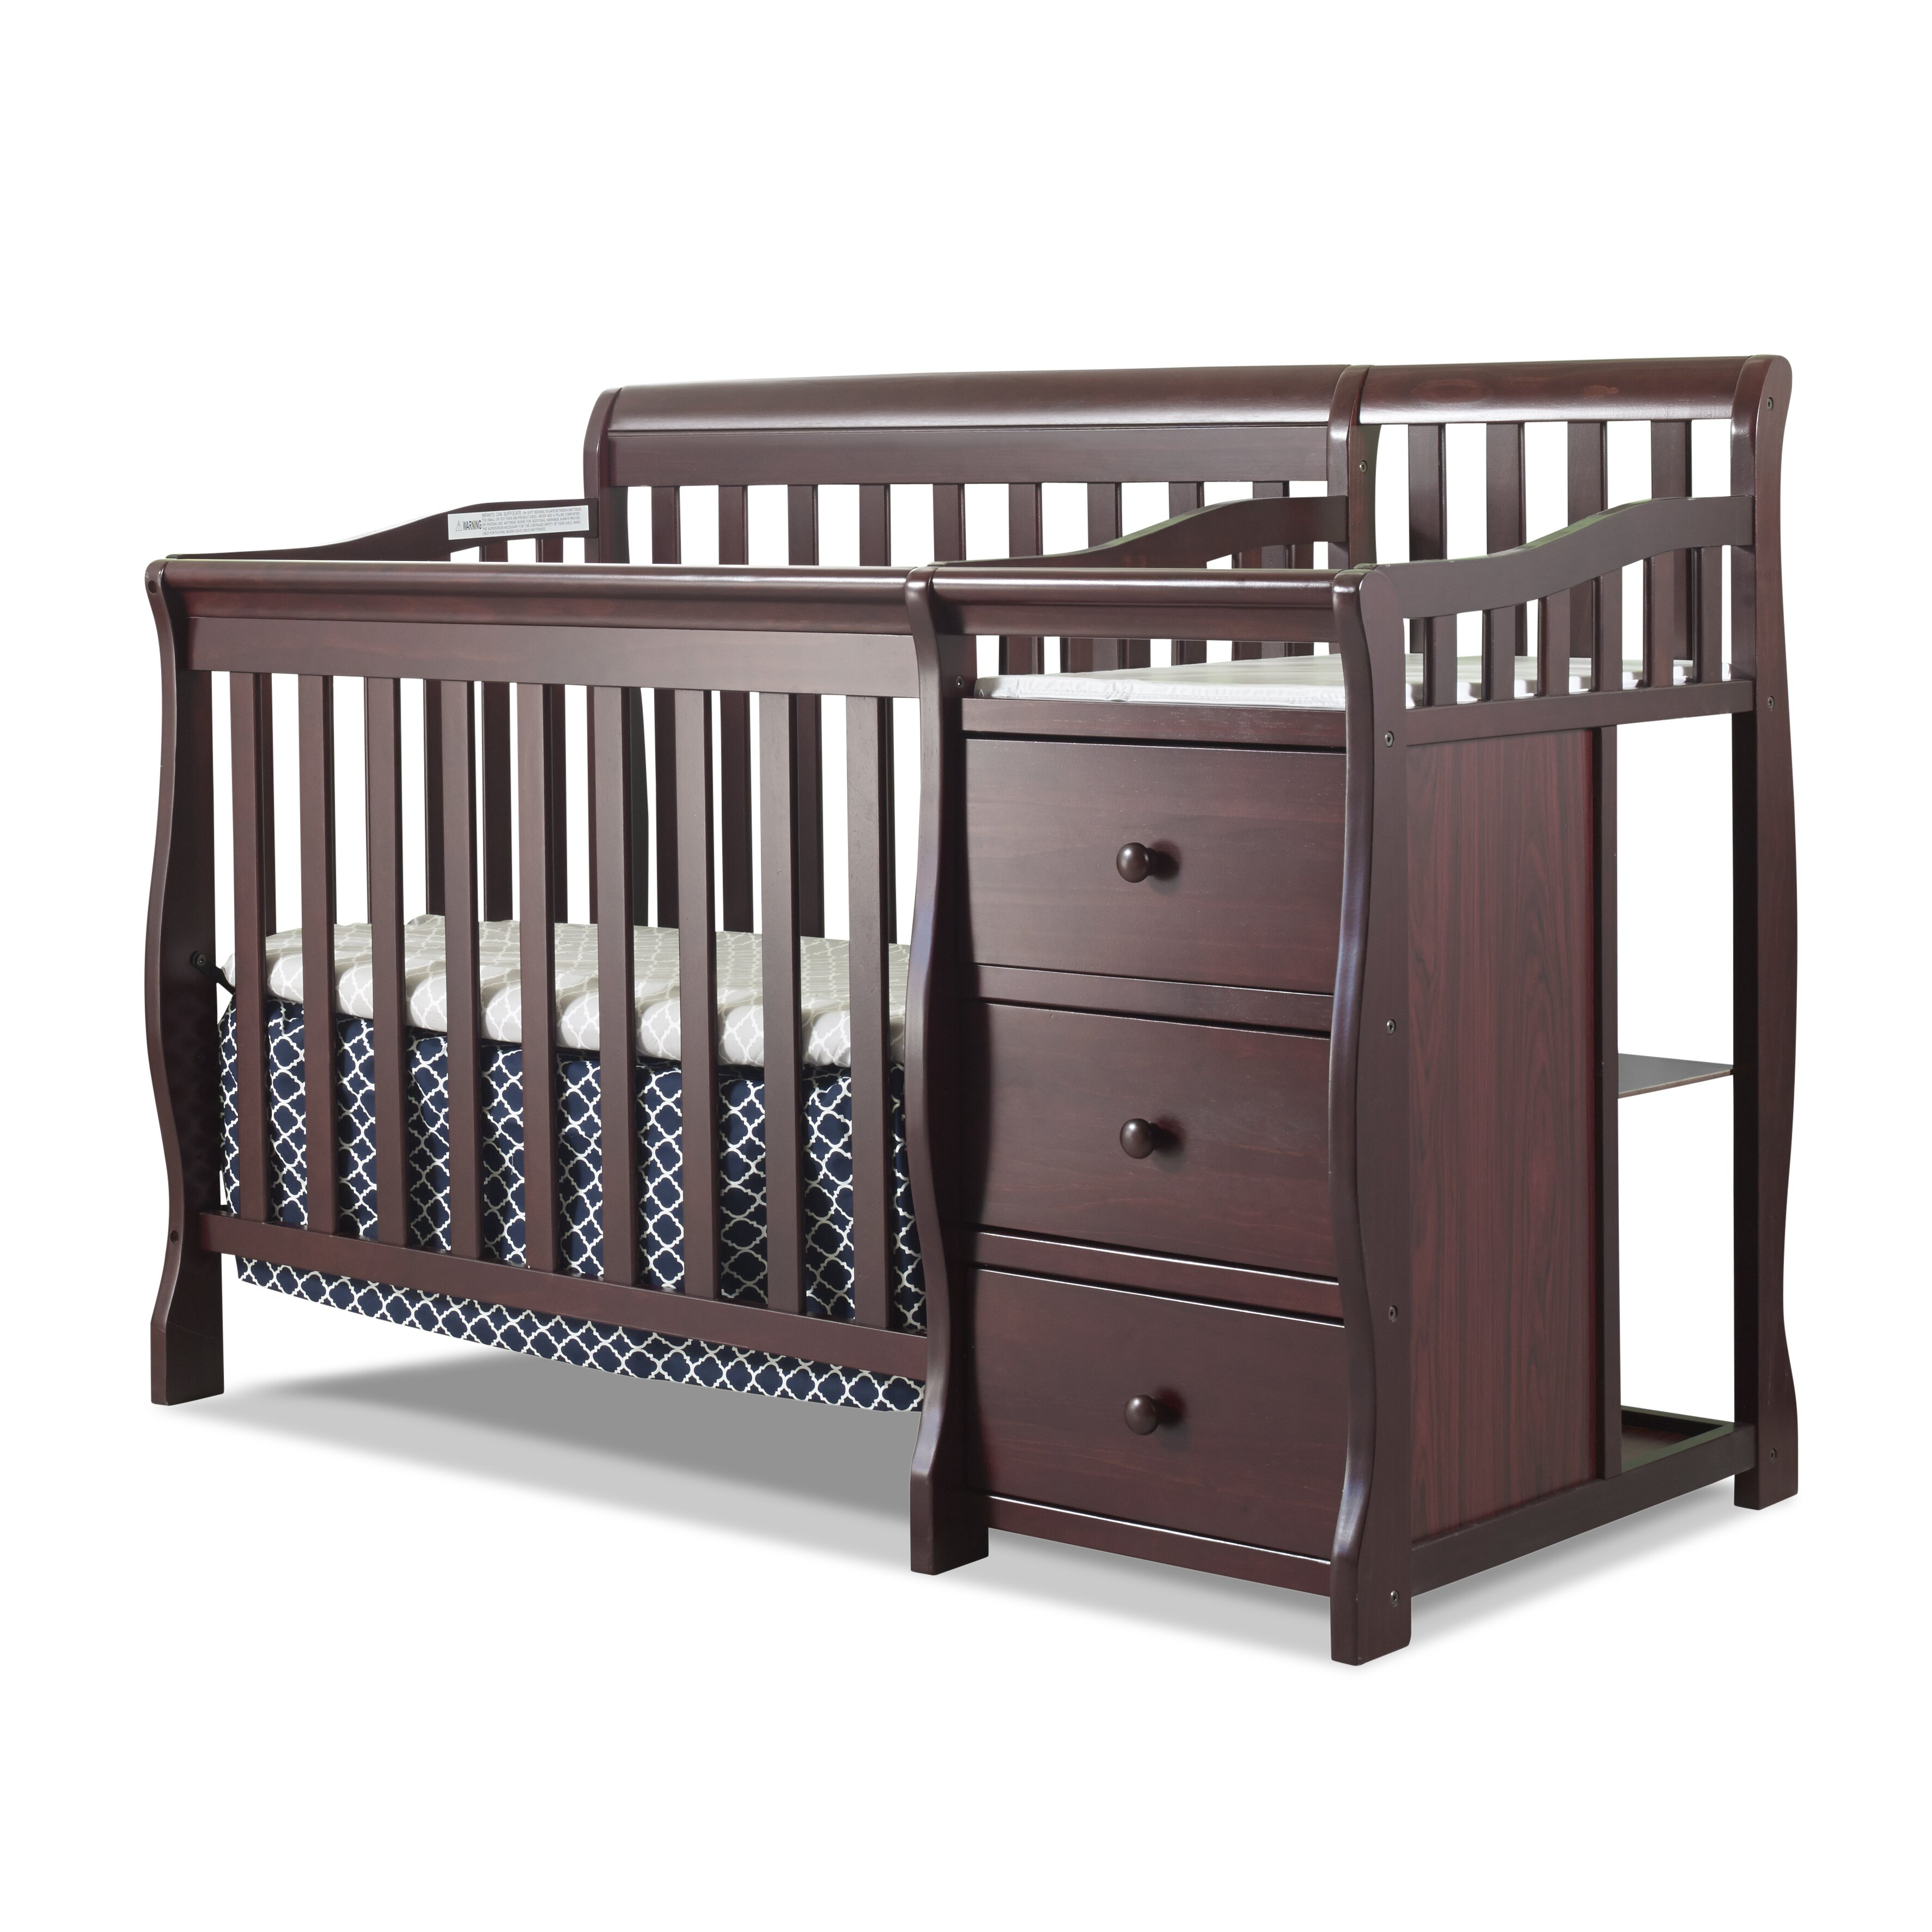 convertible getimage hayneedle cherry daphne combo url table mikaila athena shop and crib s changer red presley com in